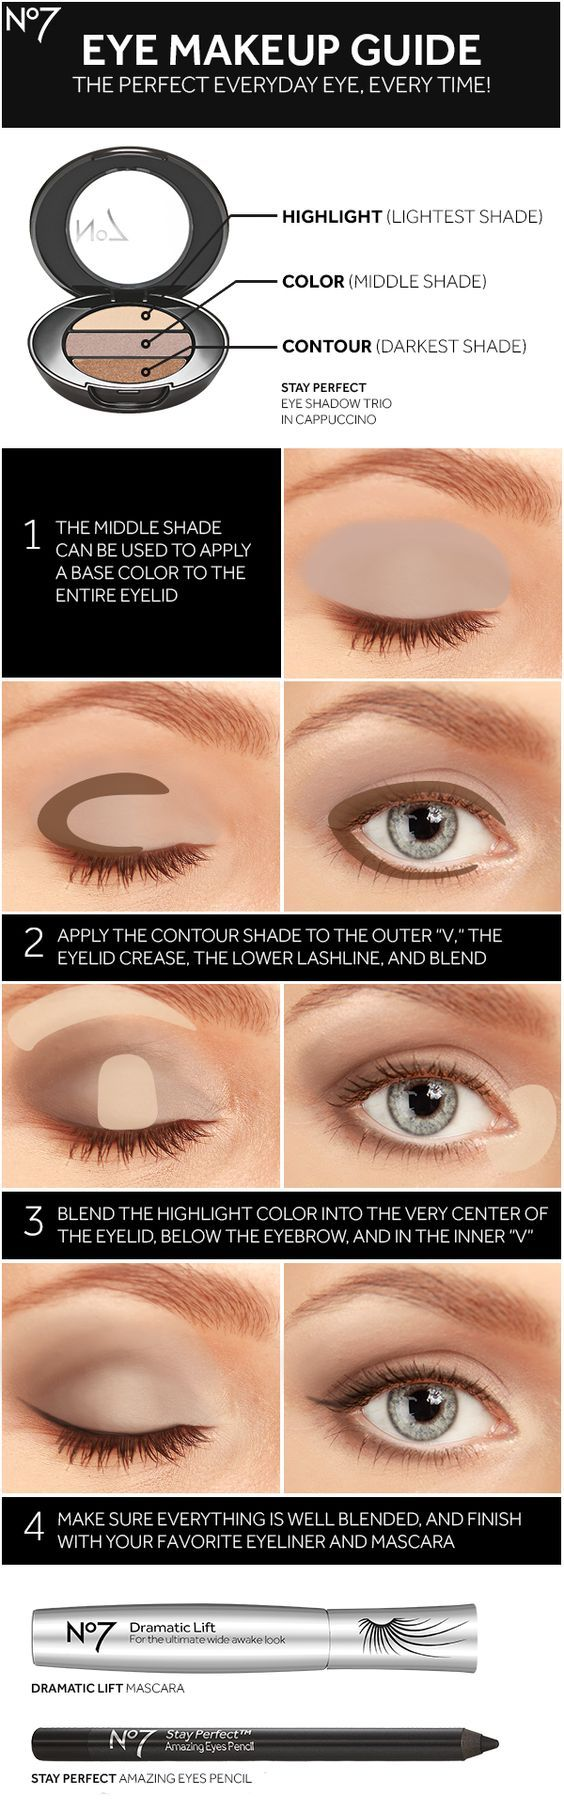 Sharpen your eye makeup skills with No7 eye shadow, mascara, eyeliner and this how-to guide for a brighter, bigger look.: